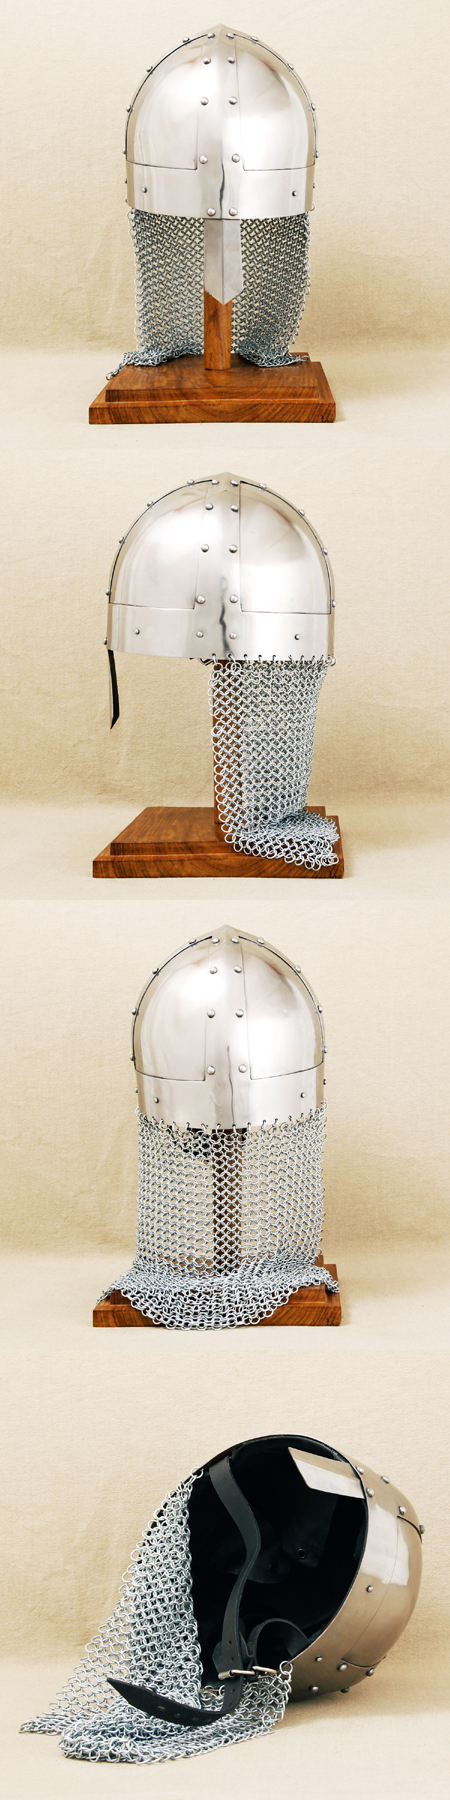 Viking Spangenhelm w.chainmail neck protection